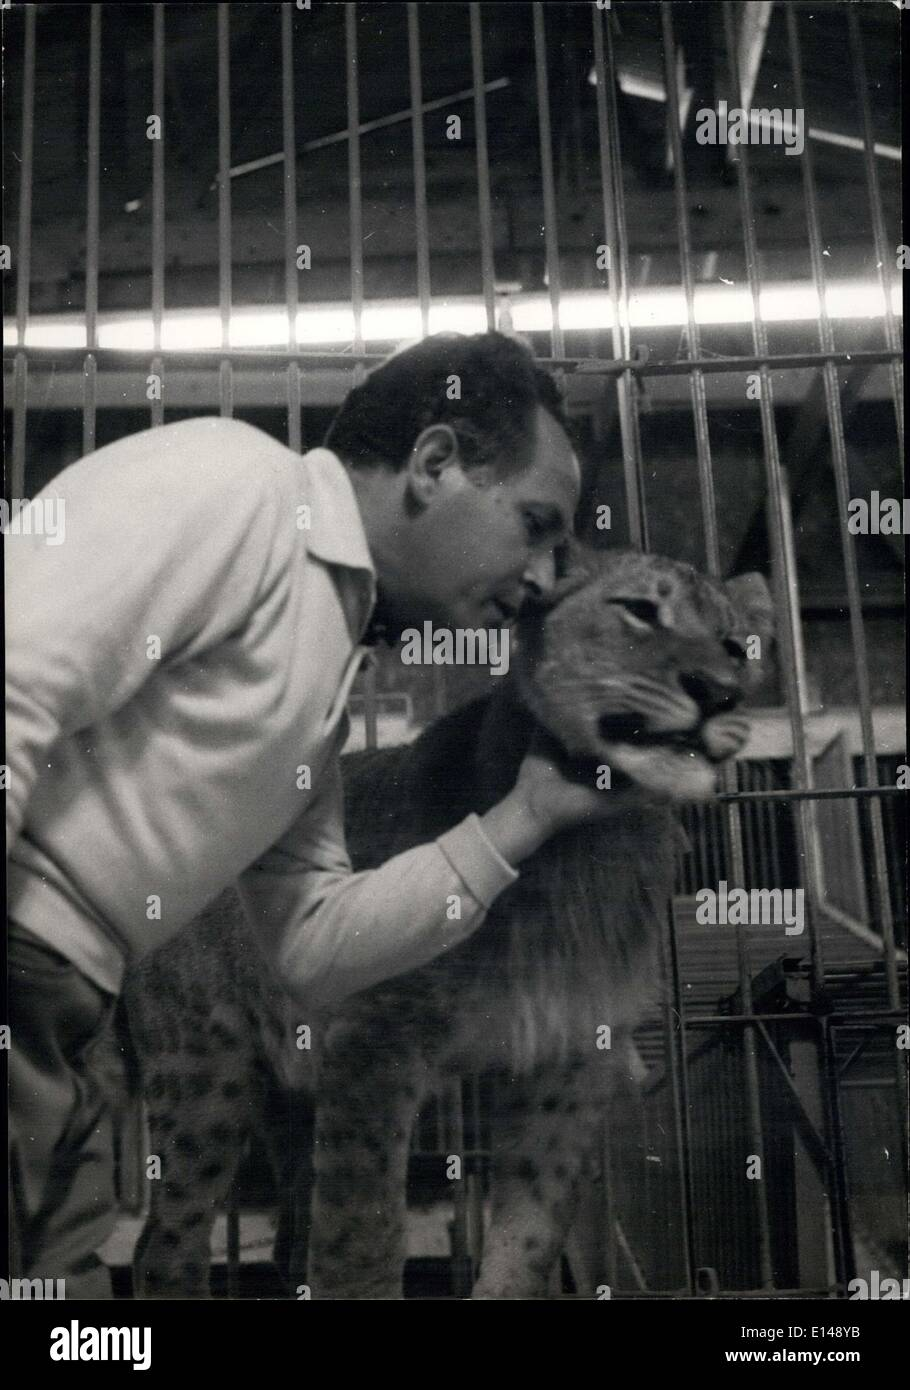 Apr. 17, 2012 - Trainer for the Circus talks closely with his Congoles spotted Lion - Stock Image